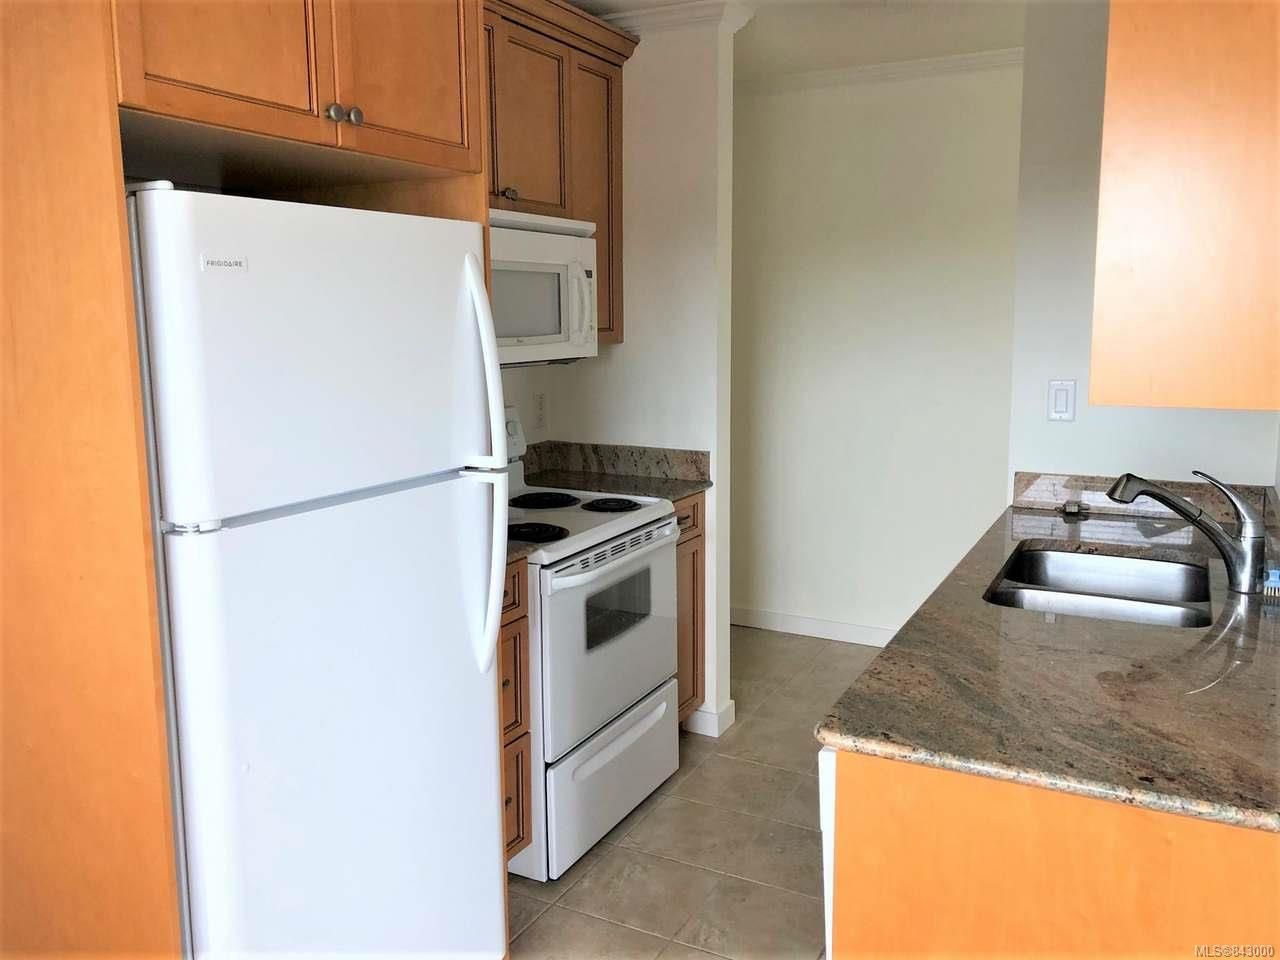 Photo 3: Photos: 405 255 W Hirst Ave in PARKSVILLE: PQ Parksville Condo for sale (Parksville/Qualicum)  : MLS®# 843000